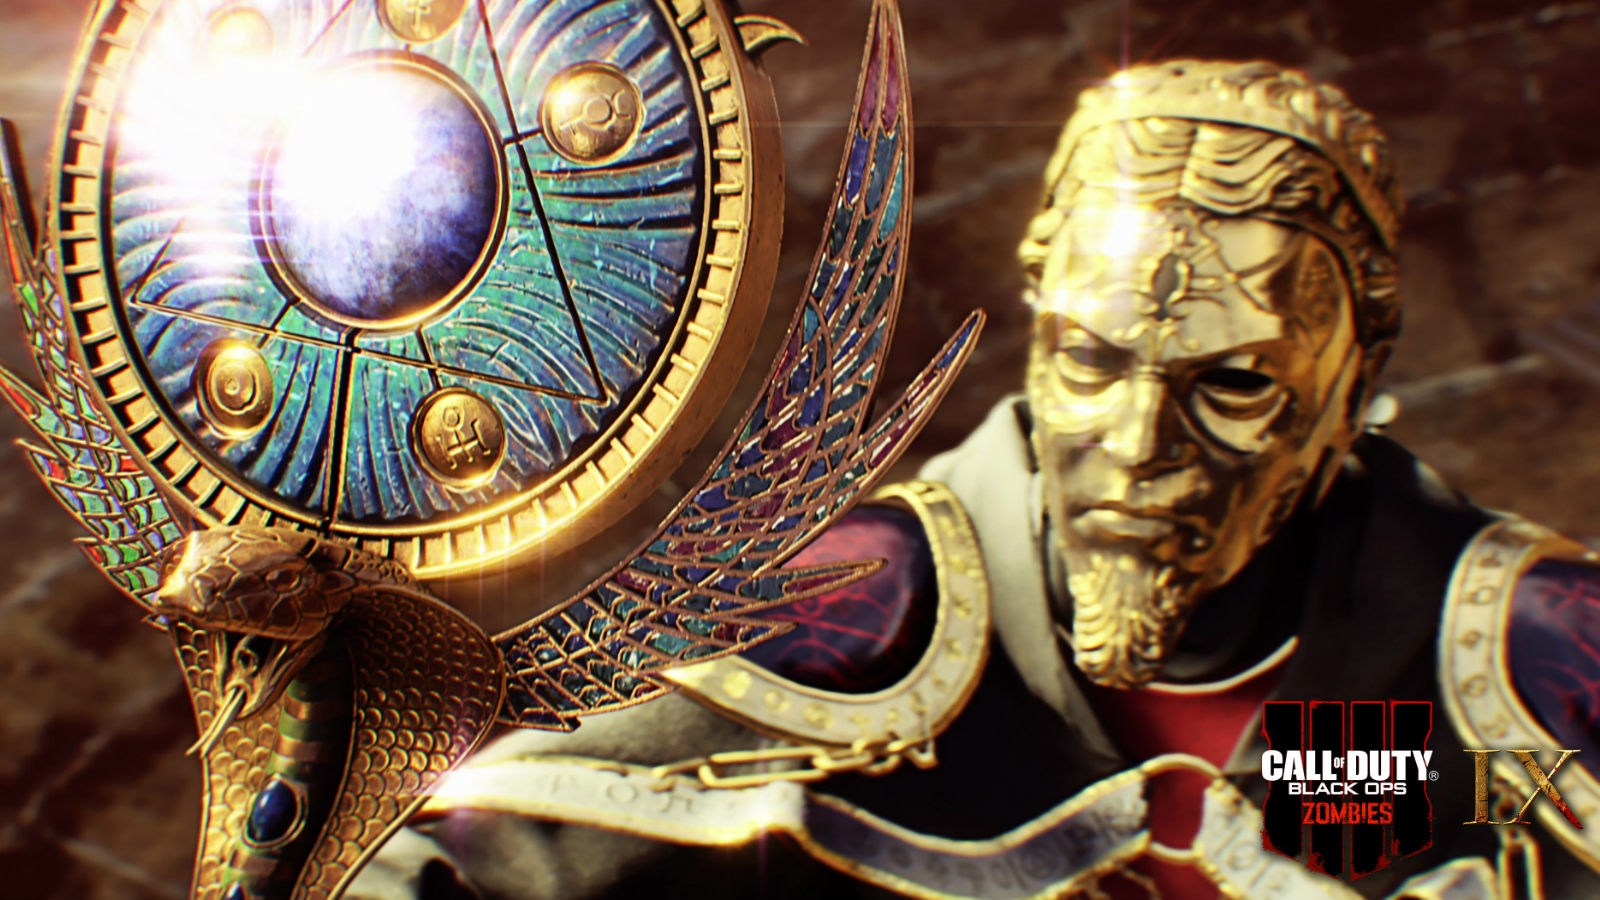 Call Of Duty: Black Ops 4 Zombies Announcements Coming At